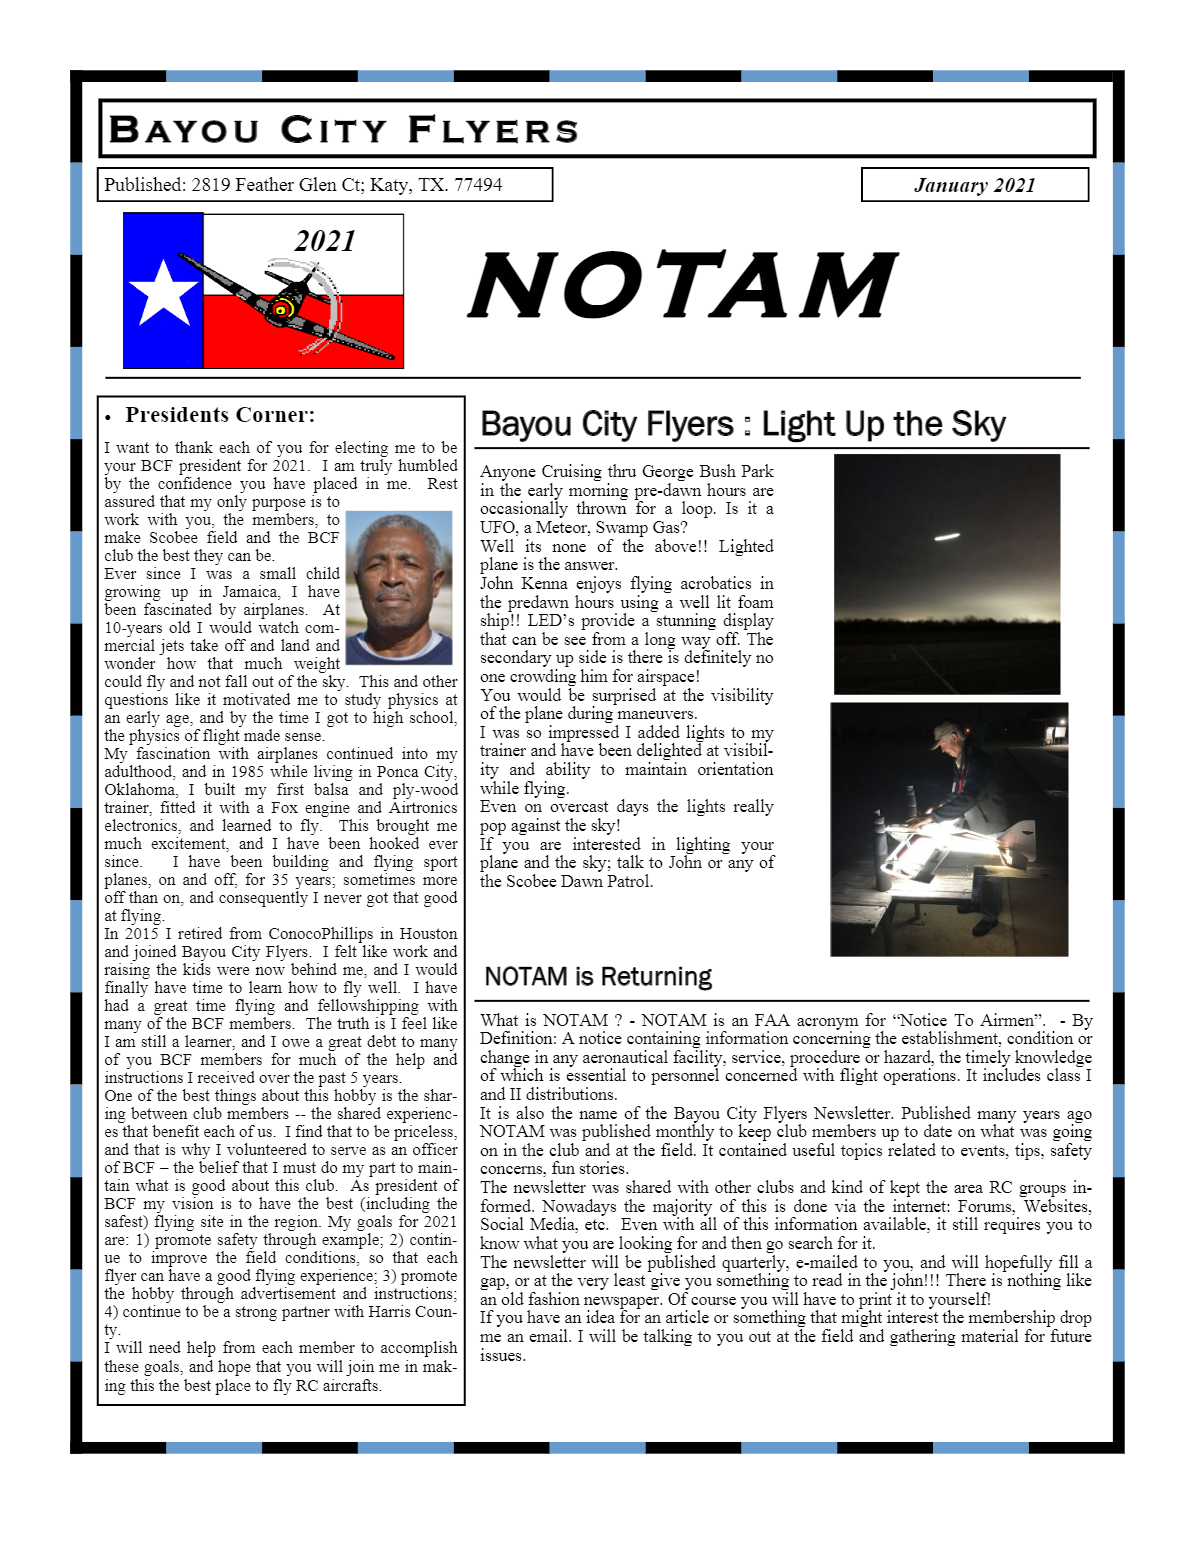 January issue of NOTAM